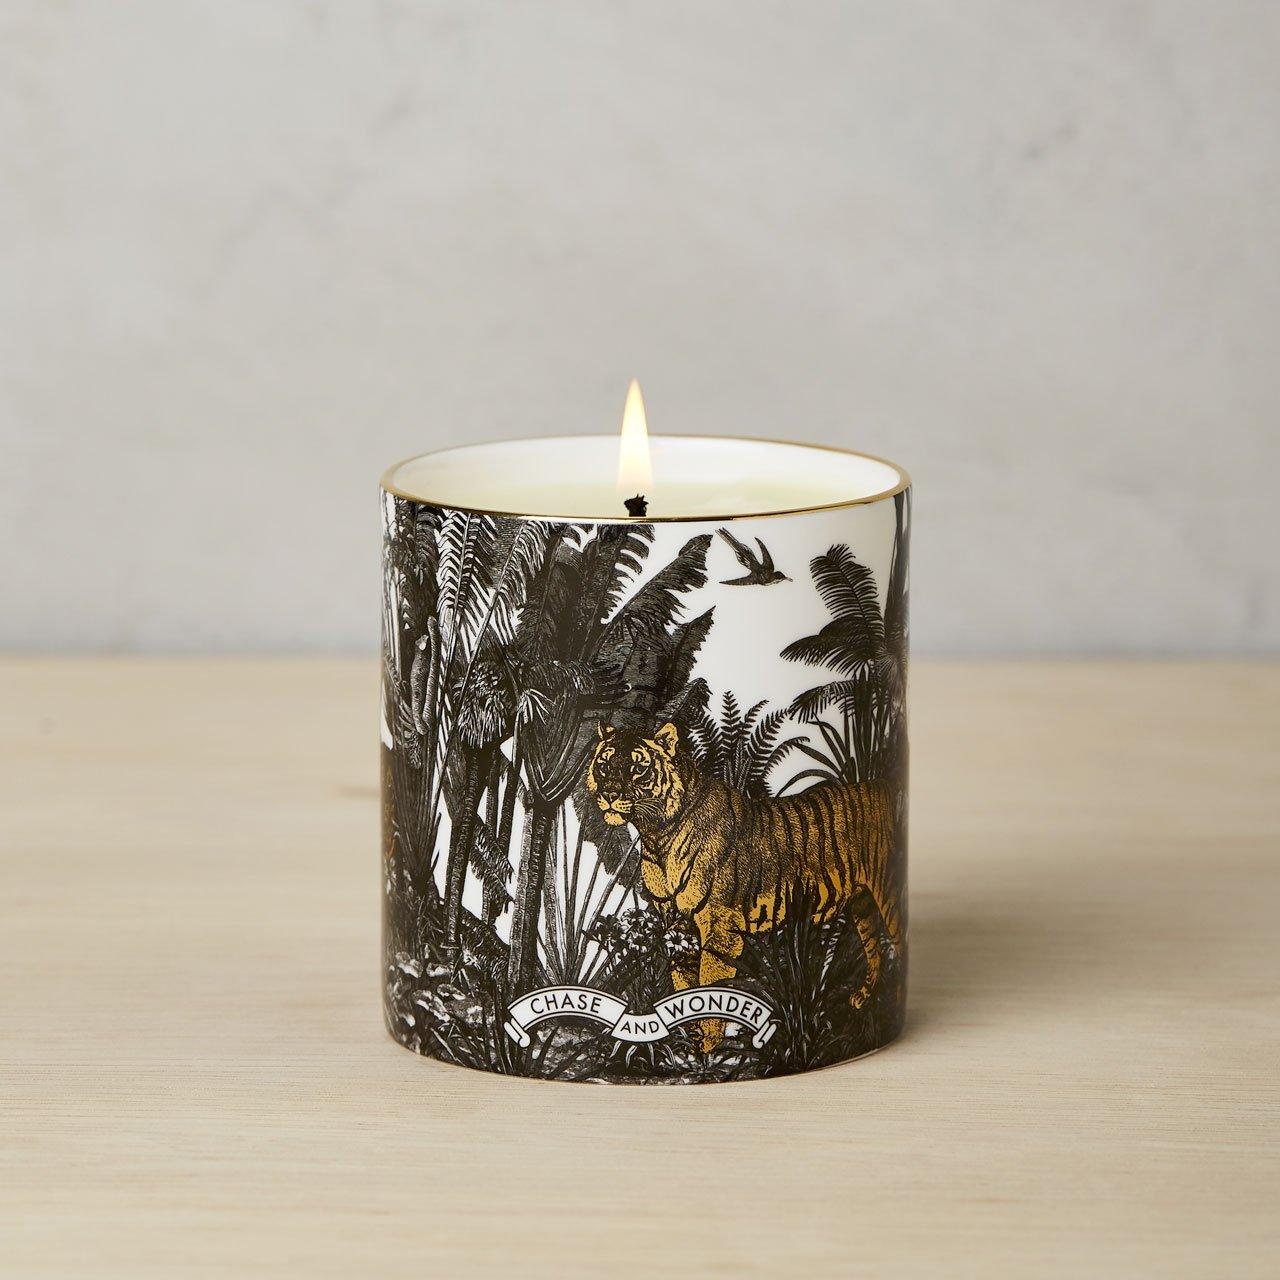 The Jungle Luxury Scented Ceramic Candle - Chase and Wonder - Proudly Made in Britain